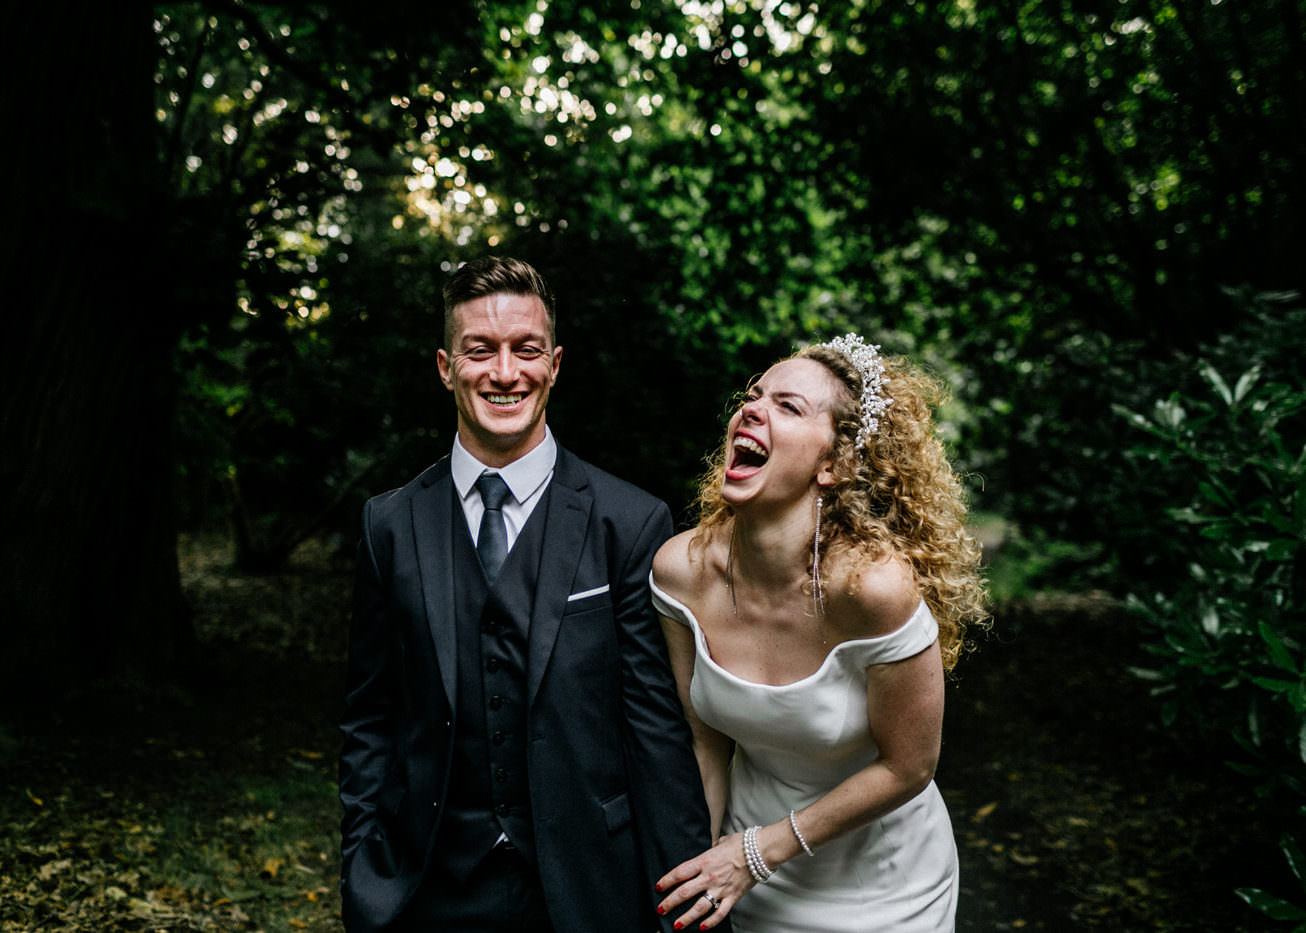 alternative-london-and-destination-wedding-photographer-006